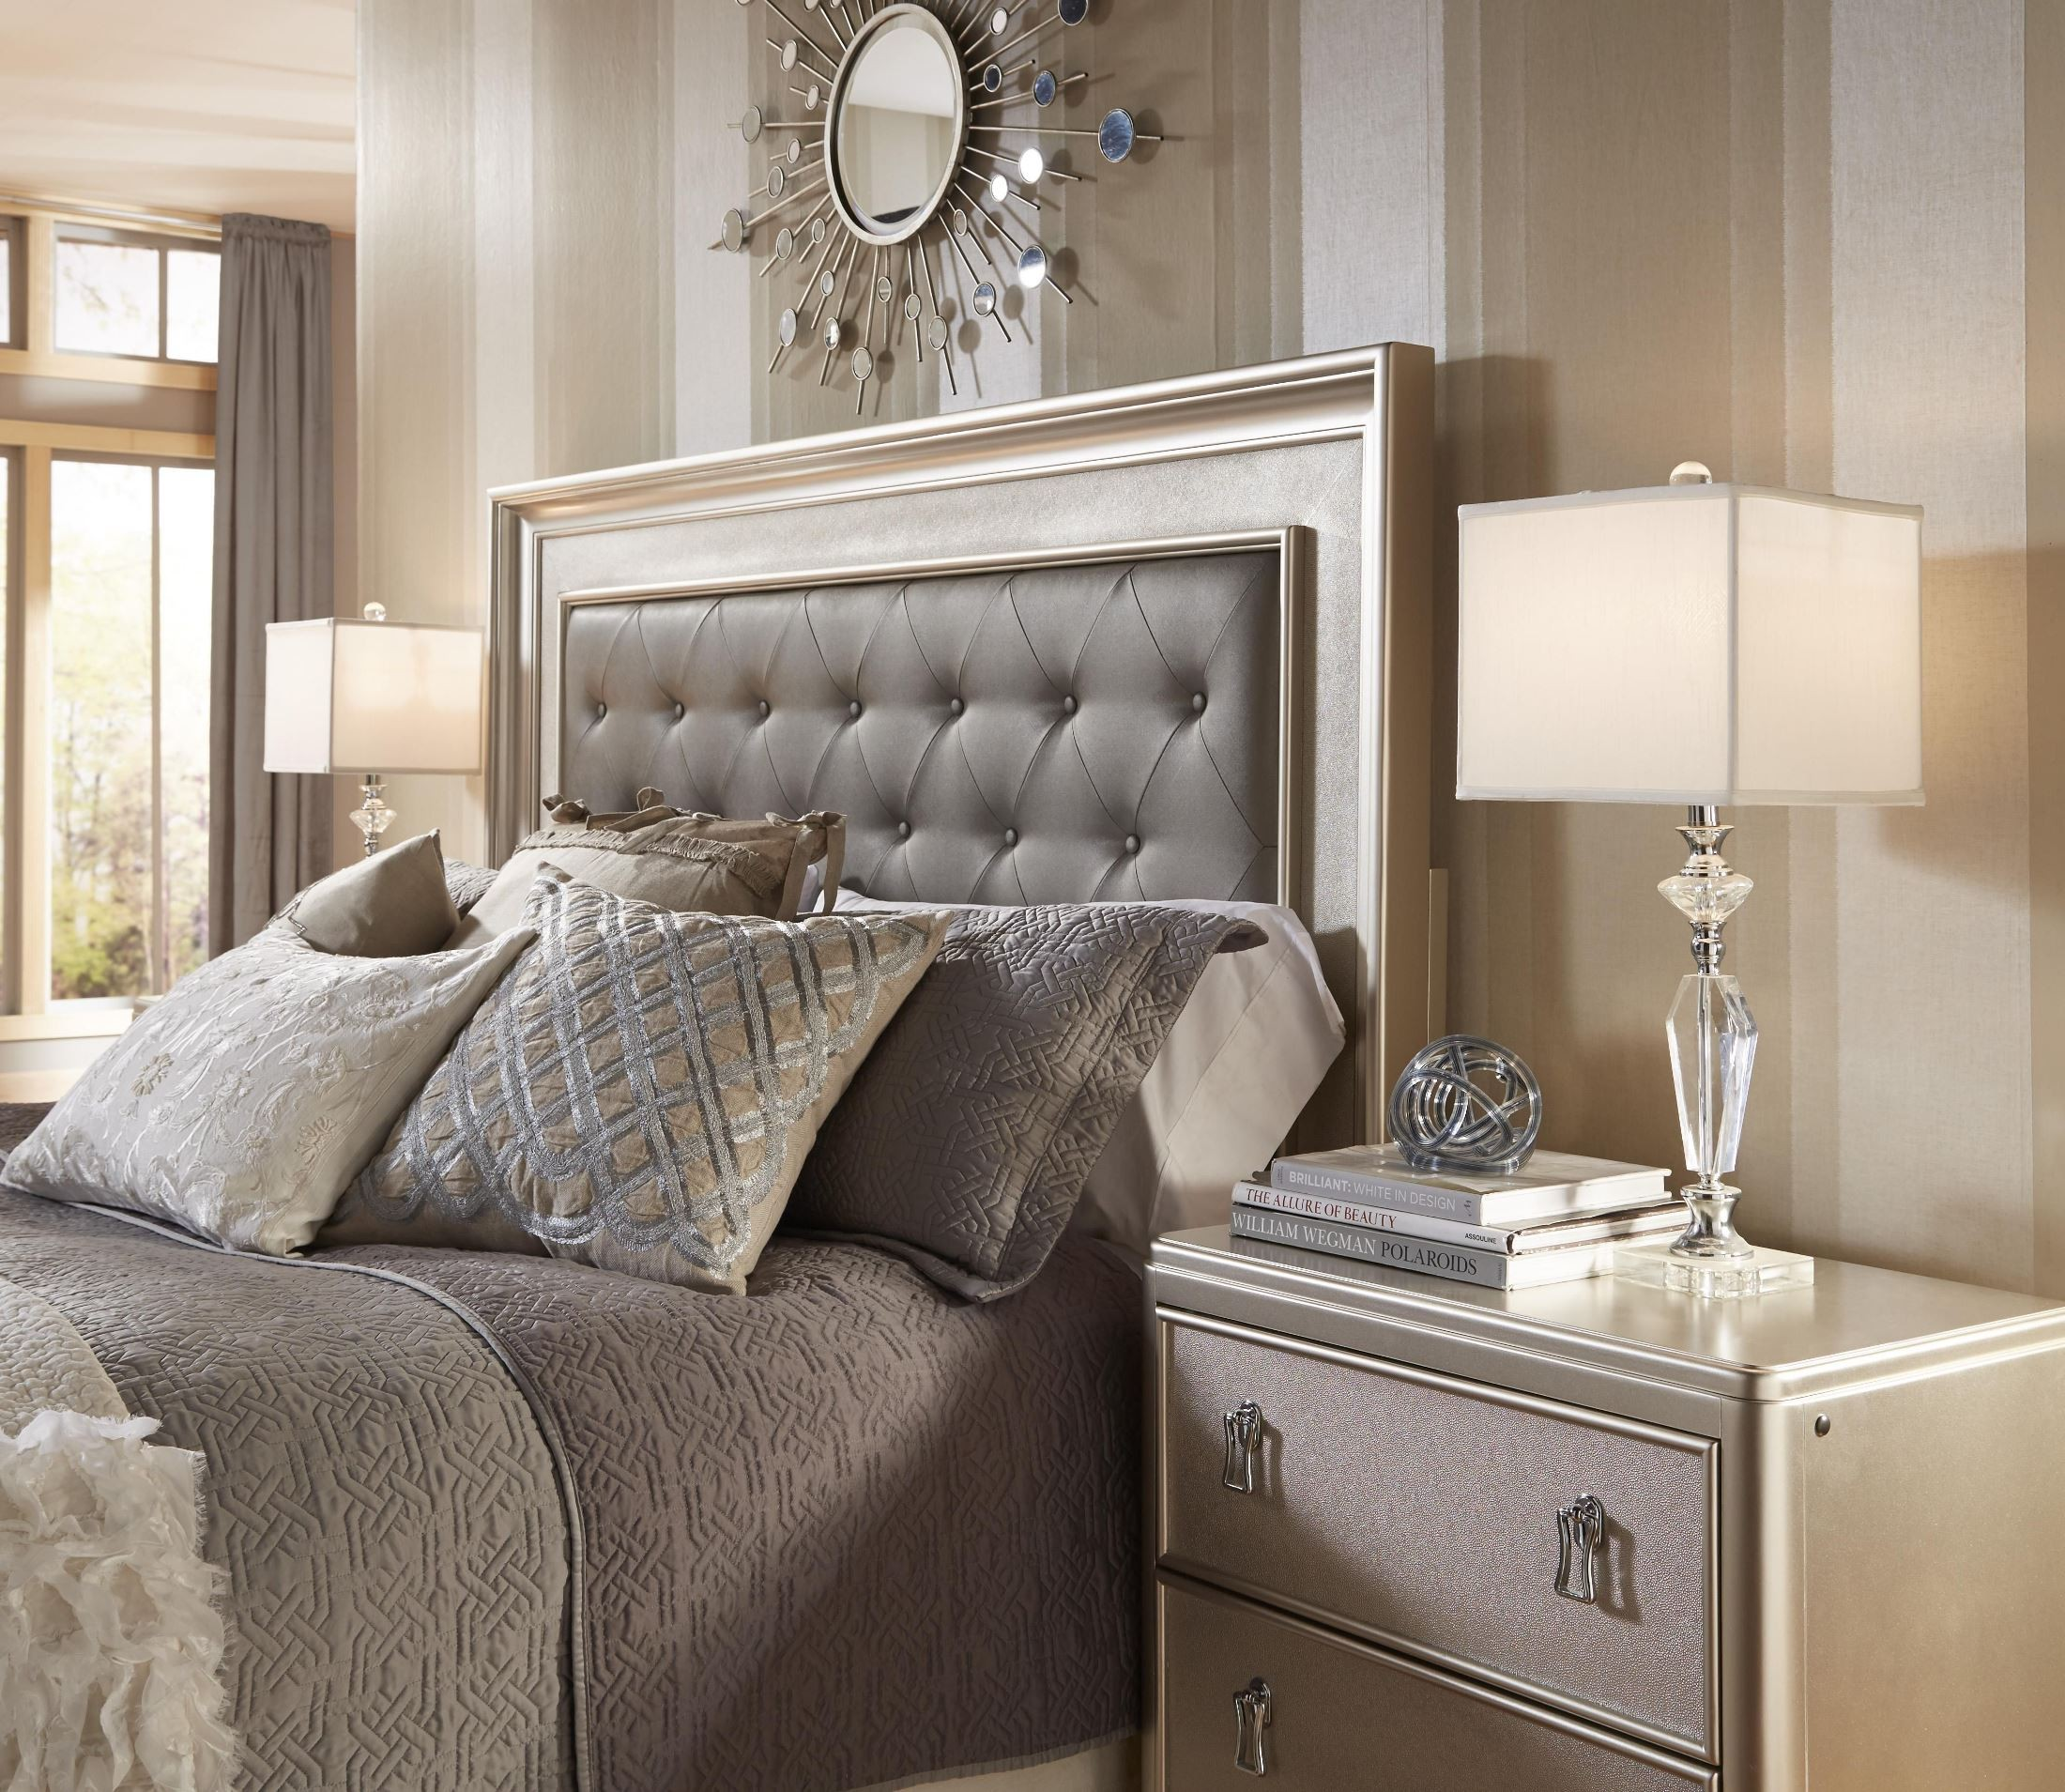 687301. Diva Panel Bedroom Set from Samuel Lawrence  8808 255 257 400